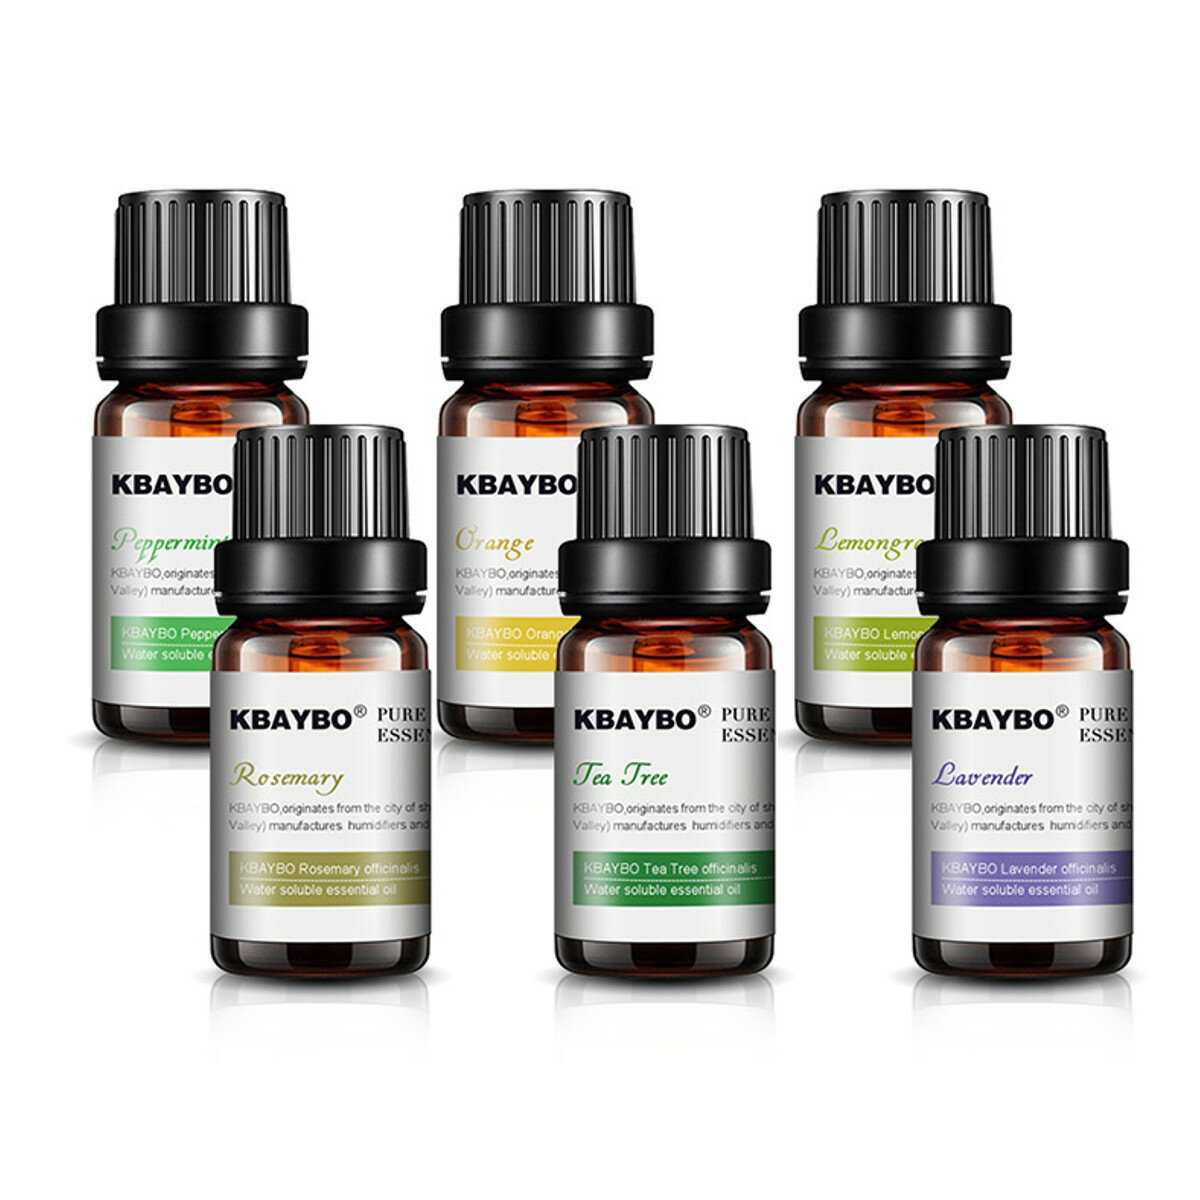 3pcs/6pcs 10ml Pure Natural Plant Extracts Essential Oils Set For Aromatherapy Diffusers Humidifier Air Lavender Tea Tree Lemongrass Rosemary Essential Oil